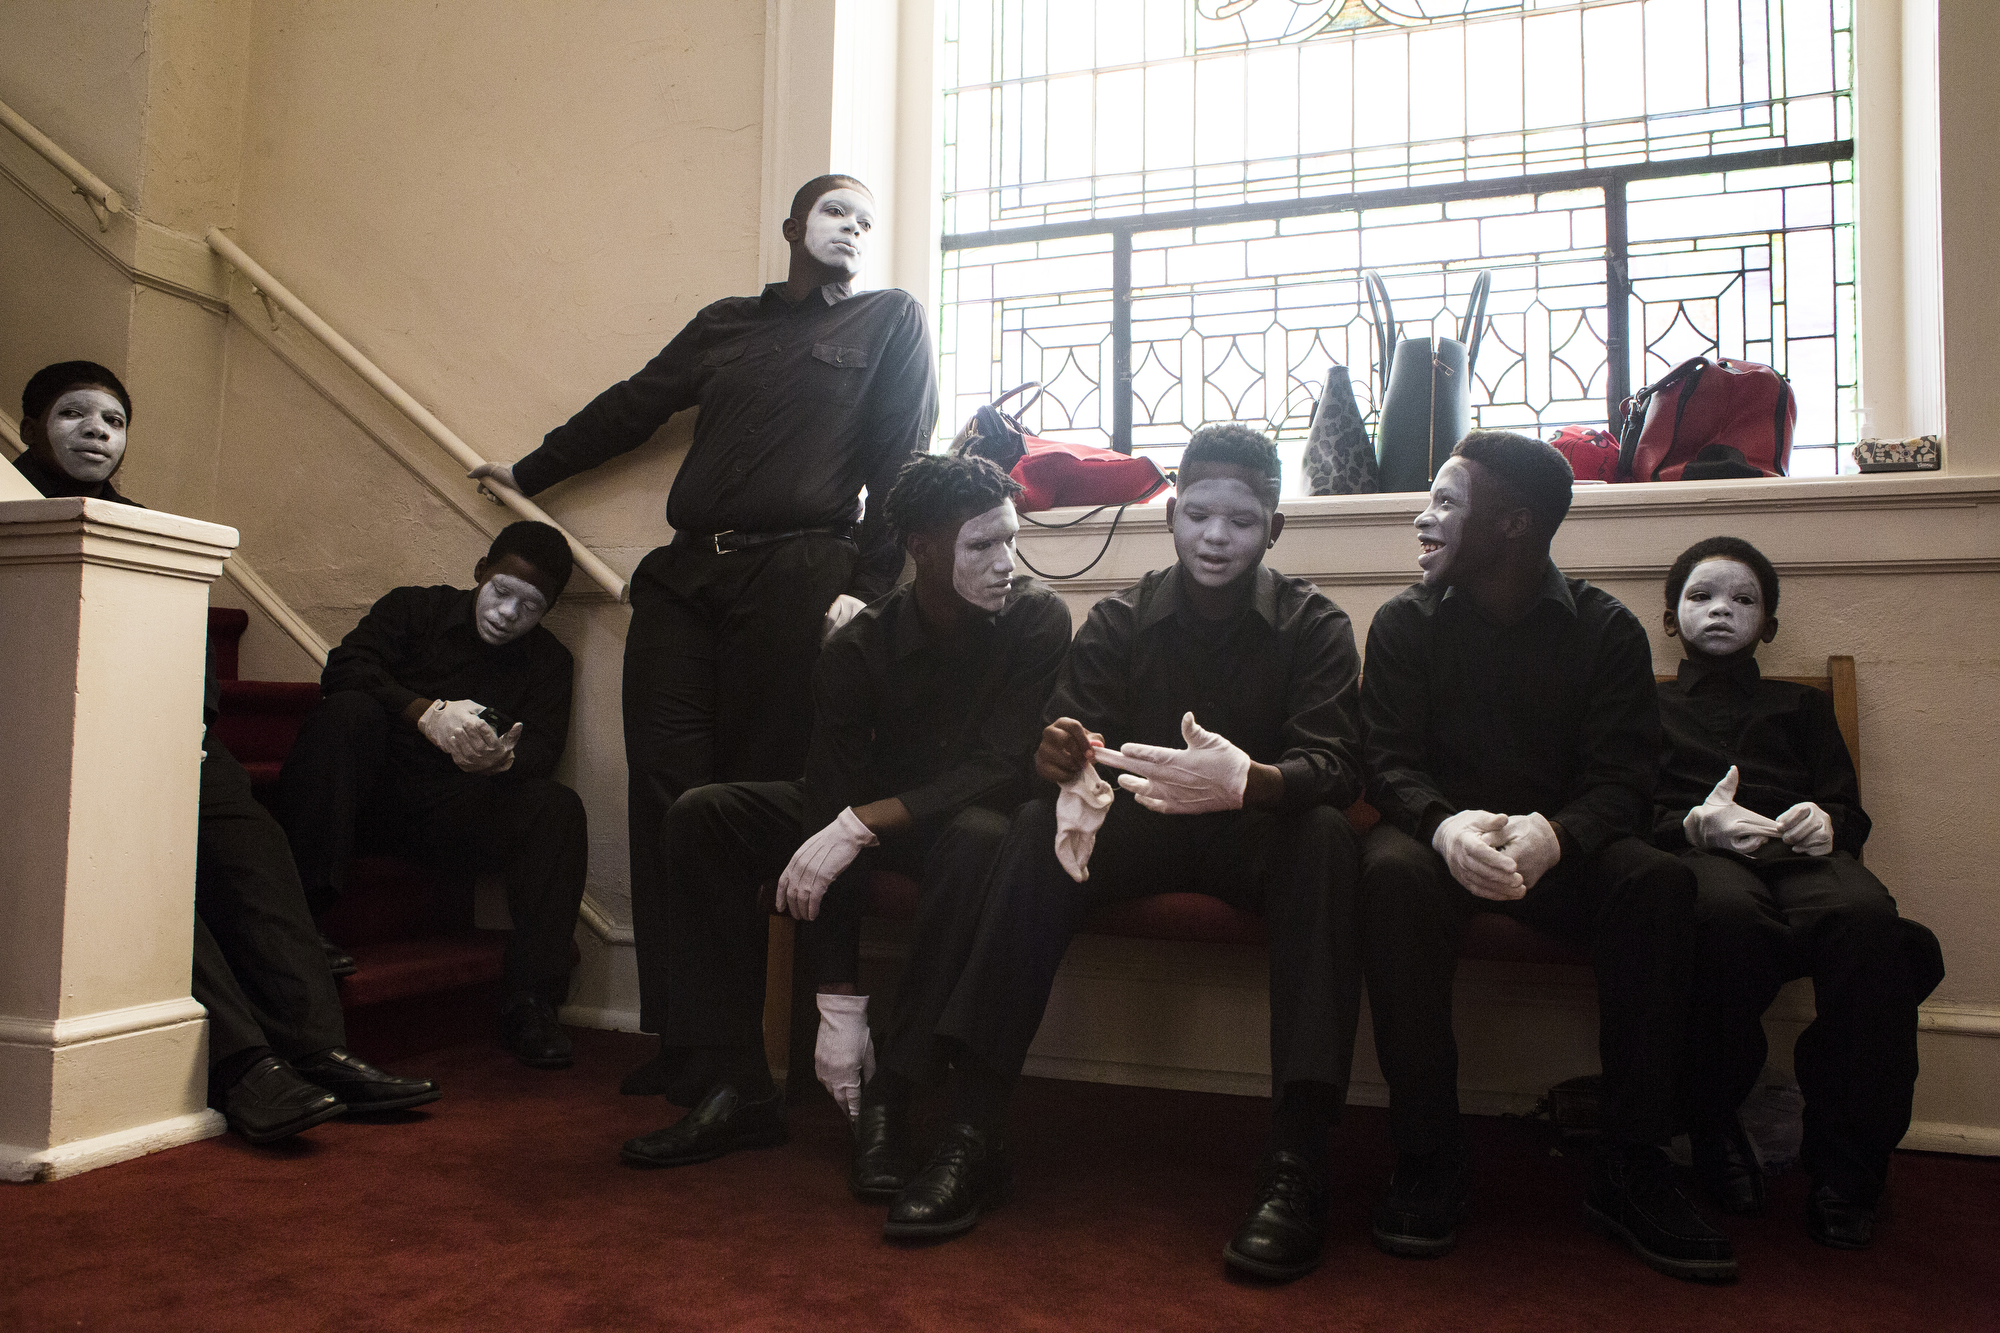 Members of the Signs of Praise Mime Ministry wait for their performance cue during the morning service at Big Bethel AME Church in Atlanta, Ga., on September 20, 2015. The boys perform on a monthly basis under the direction of Kawanza Smith, an advisor and long time member of Big Bethel.